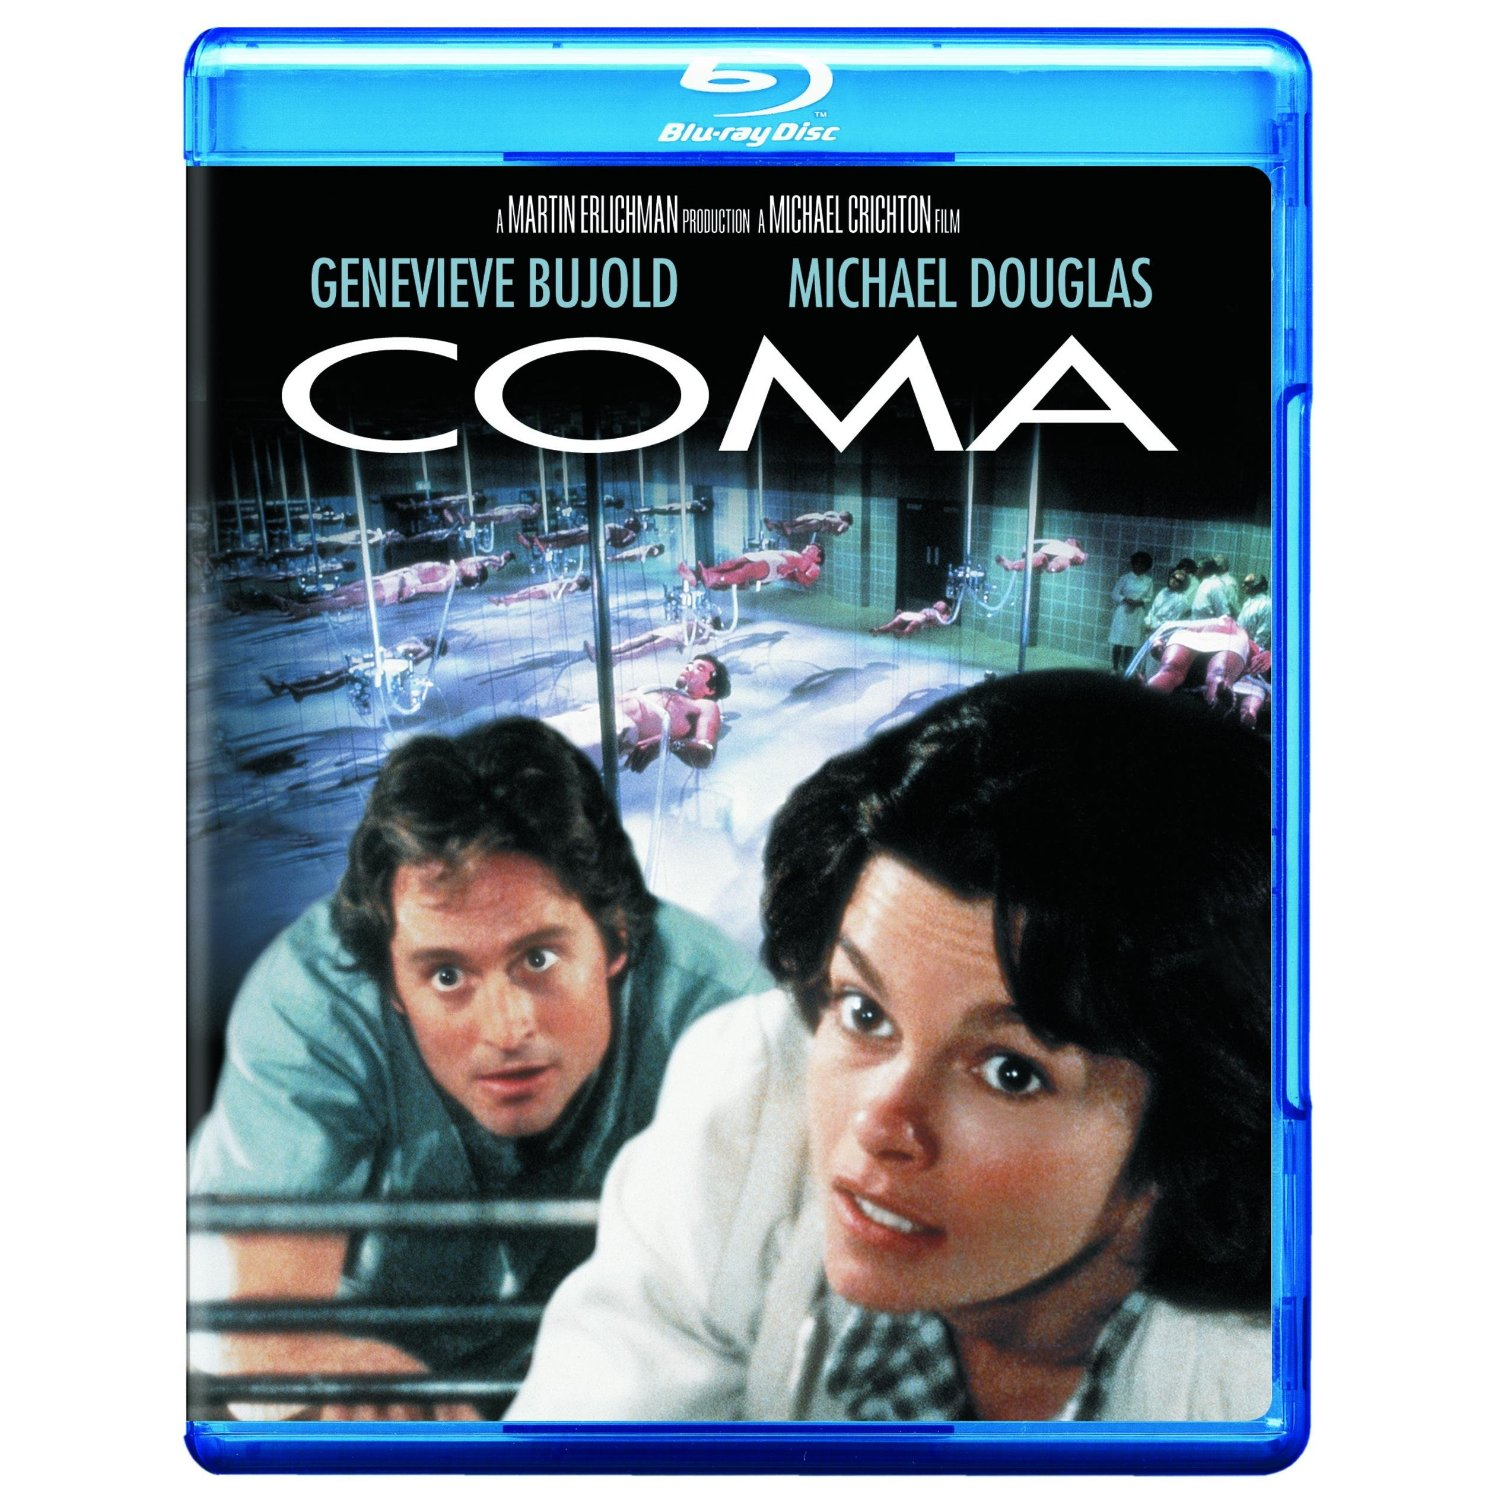 Coma on Blu-ray